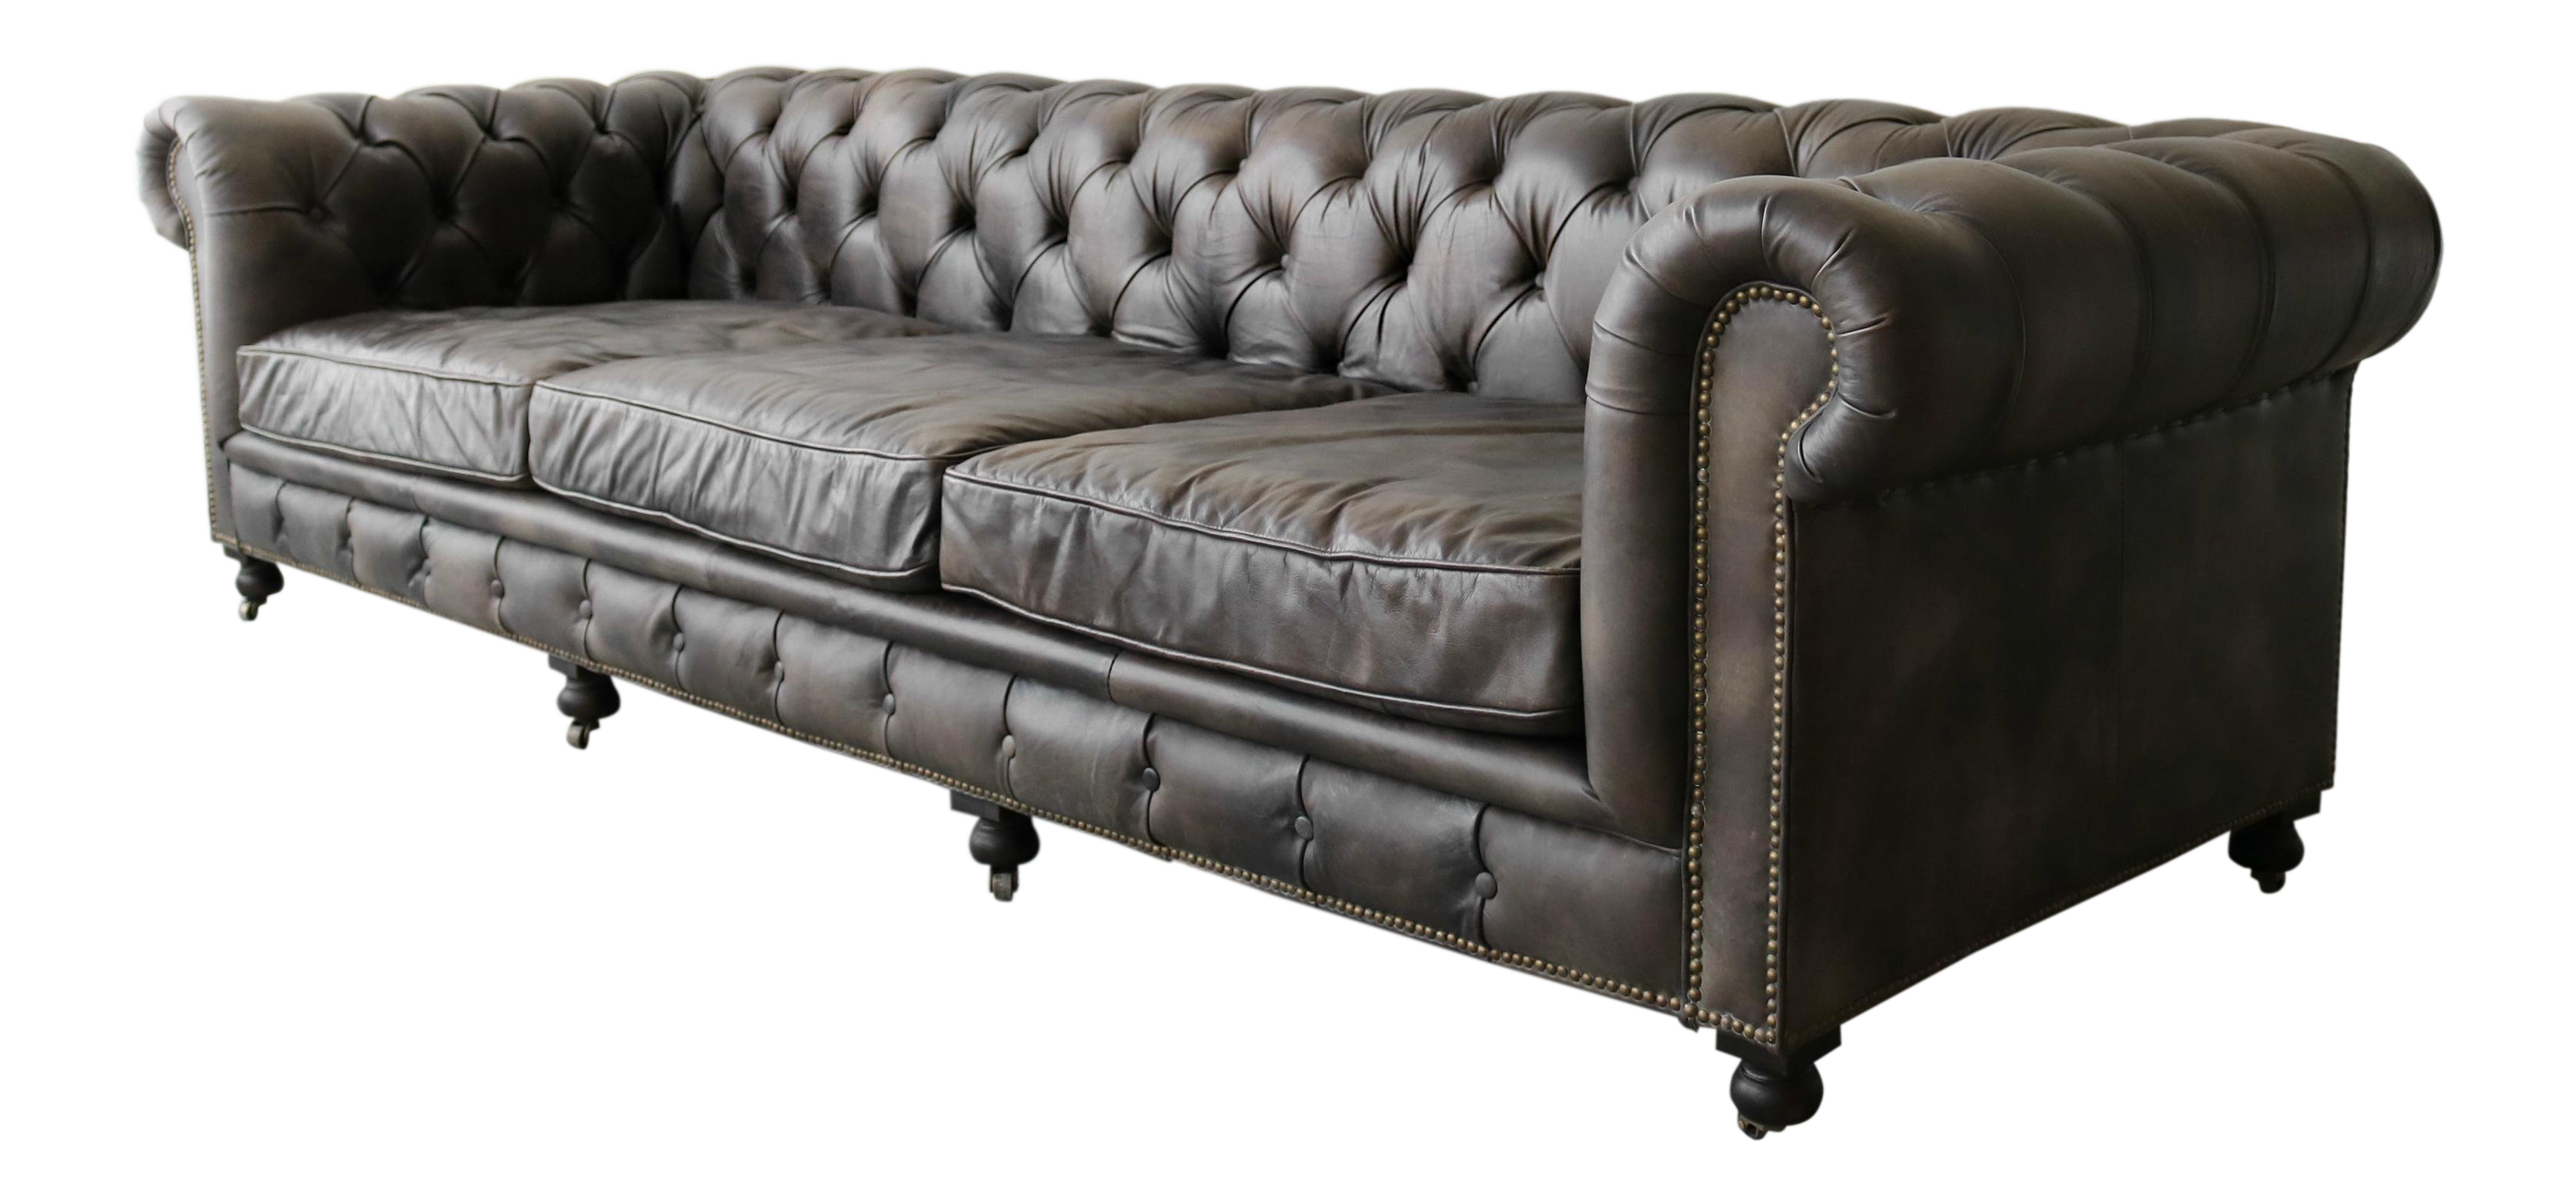 10ft Italian Leather Chesterfield Sofa